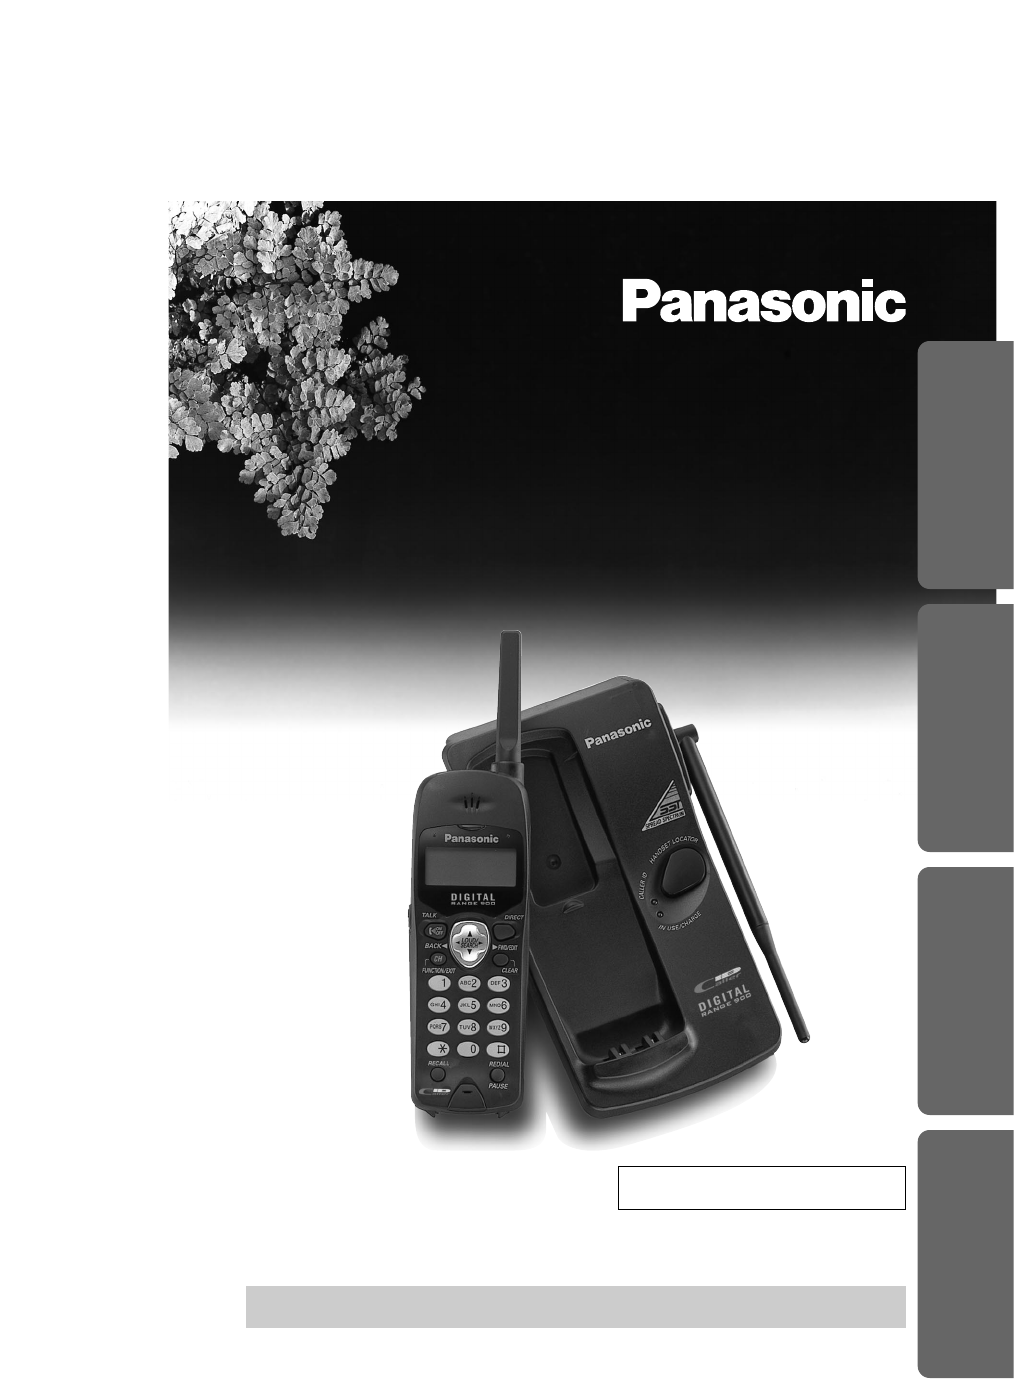 panasonic cordless phone instructions